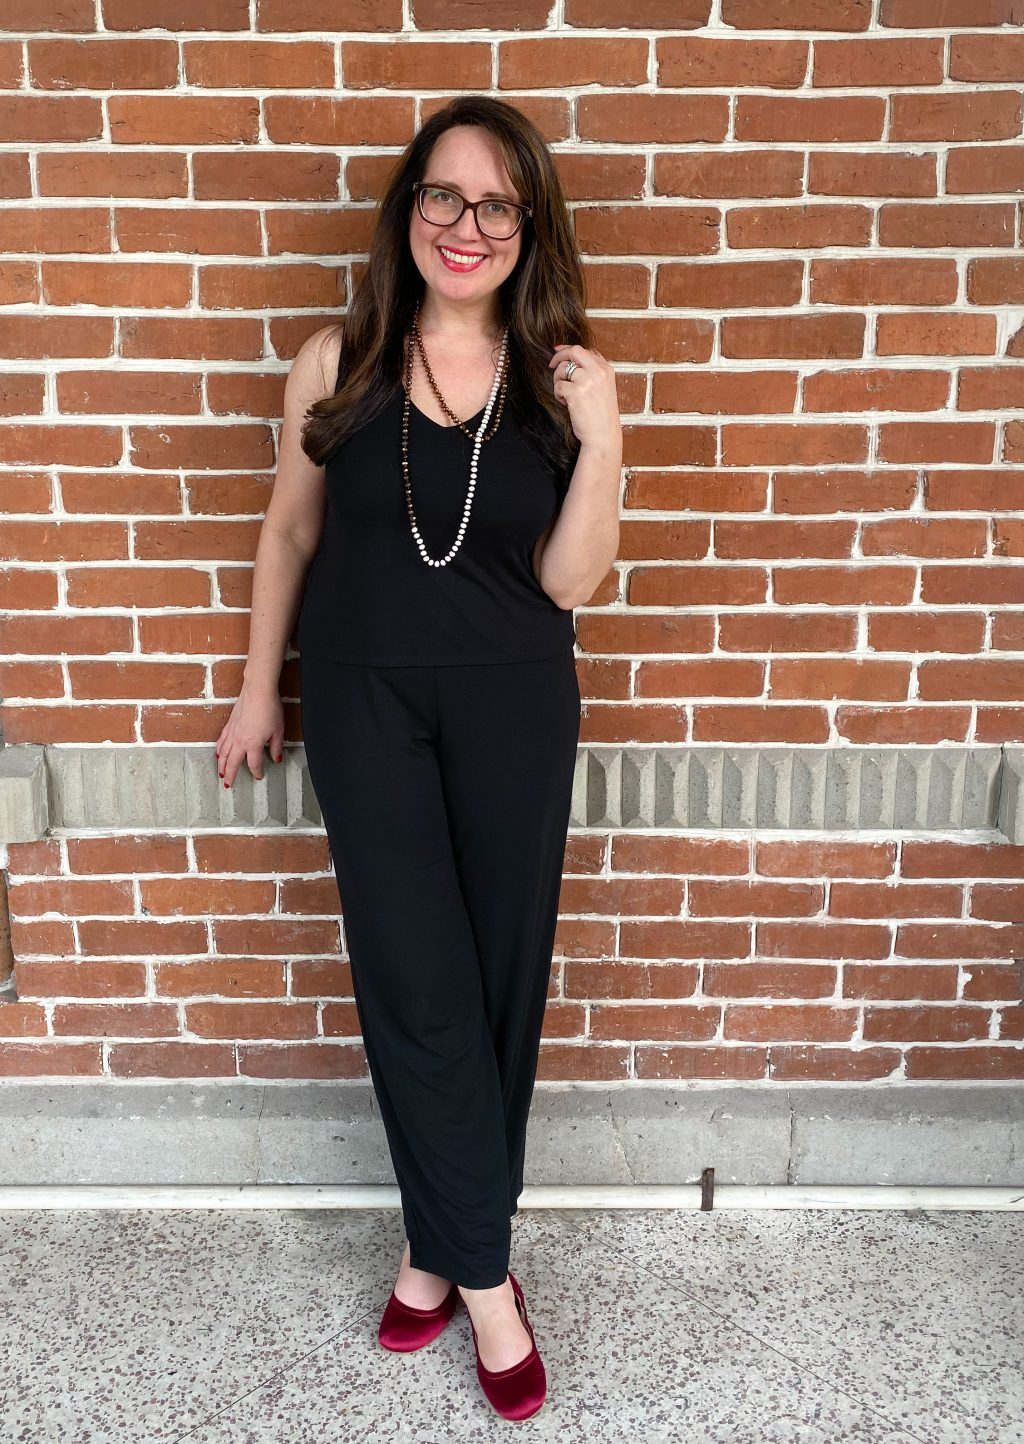 brunette woman wearing black jumpsuit standing in front of brick wall